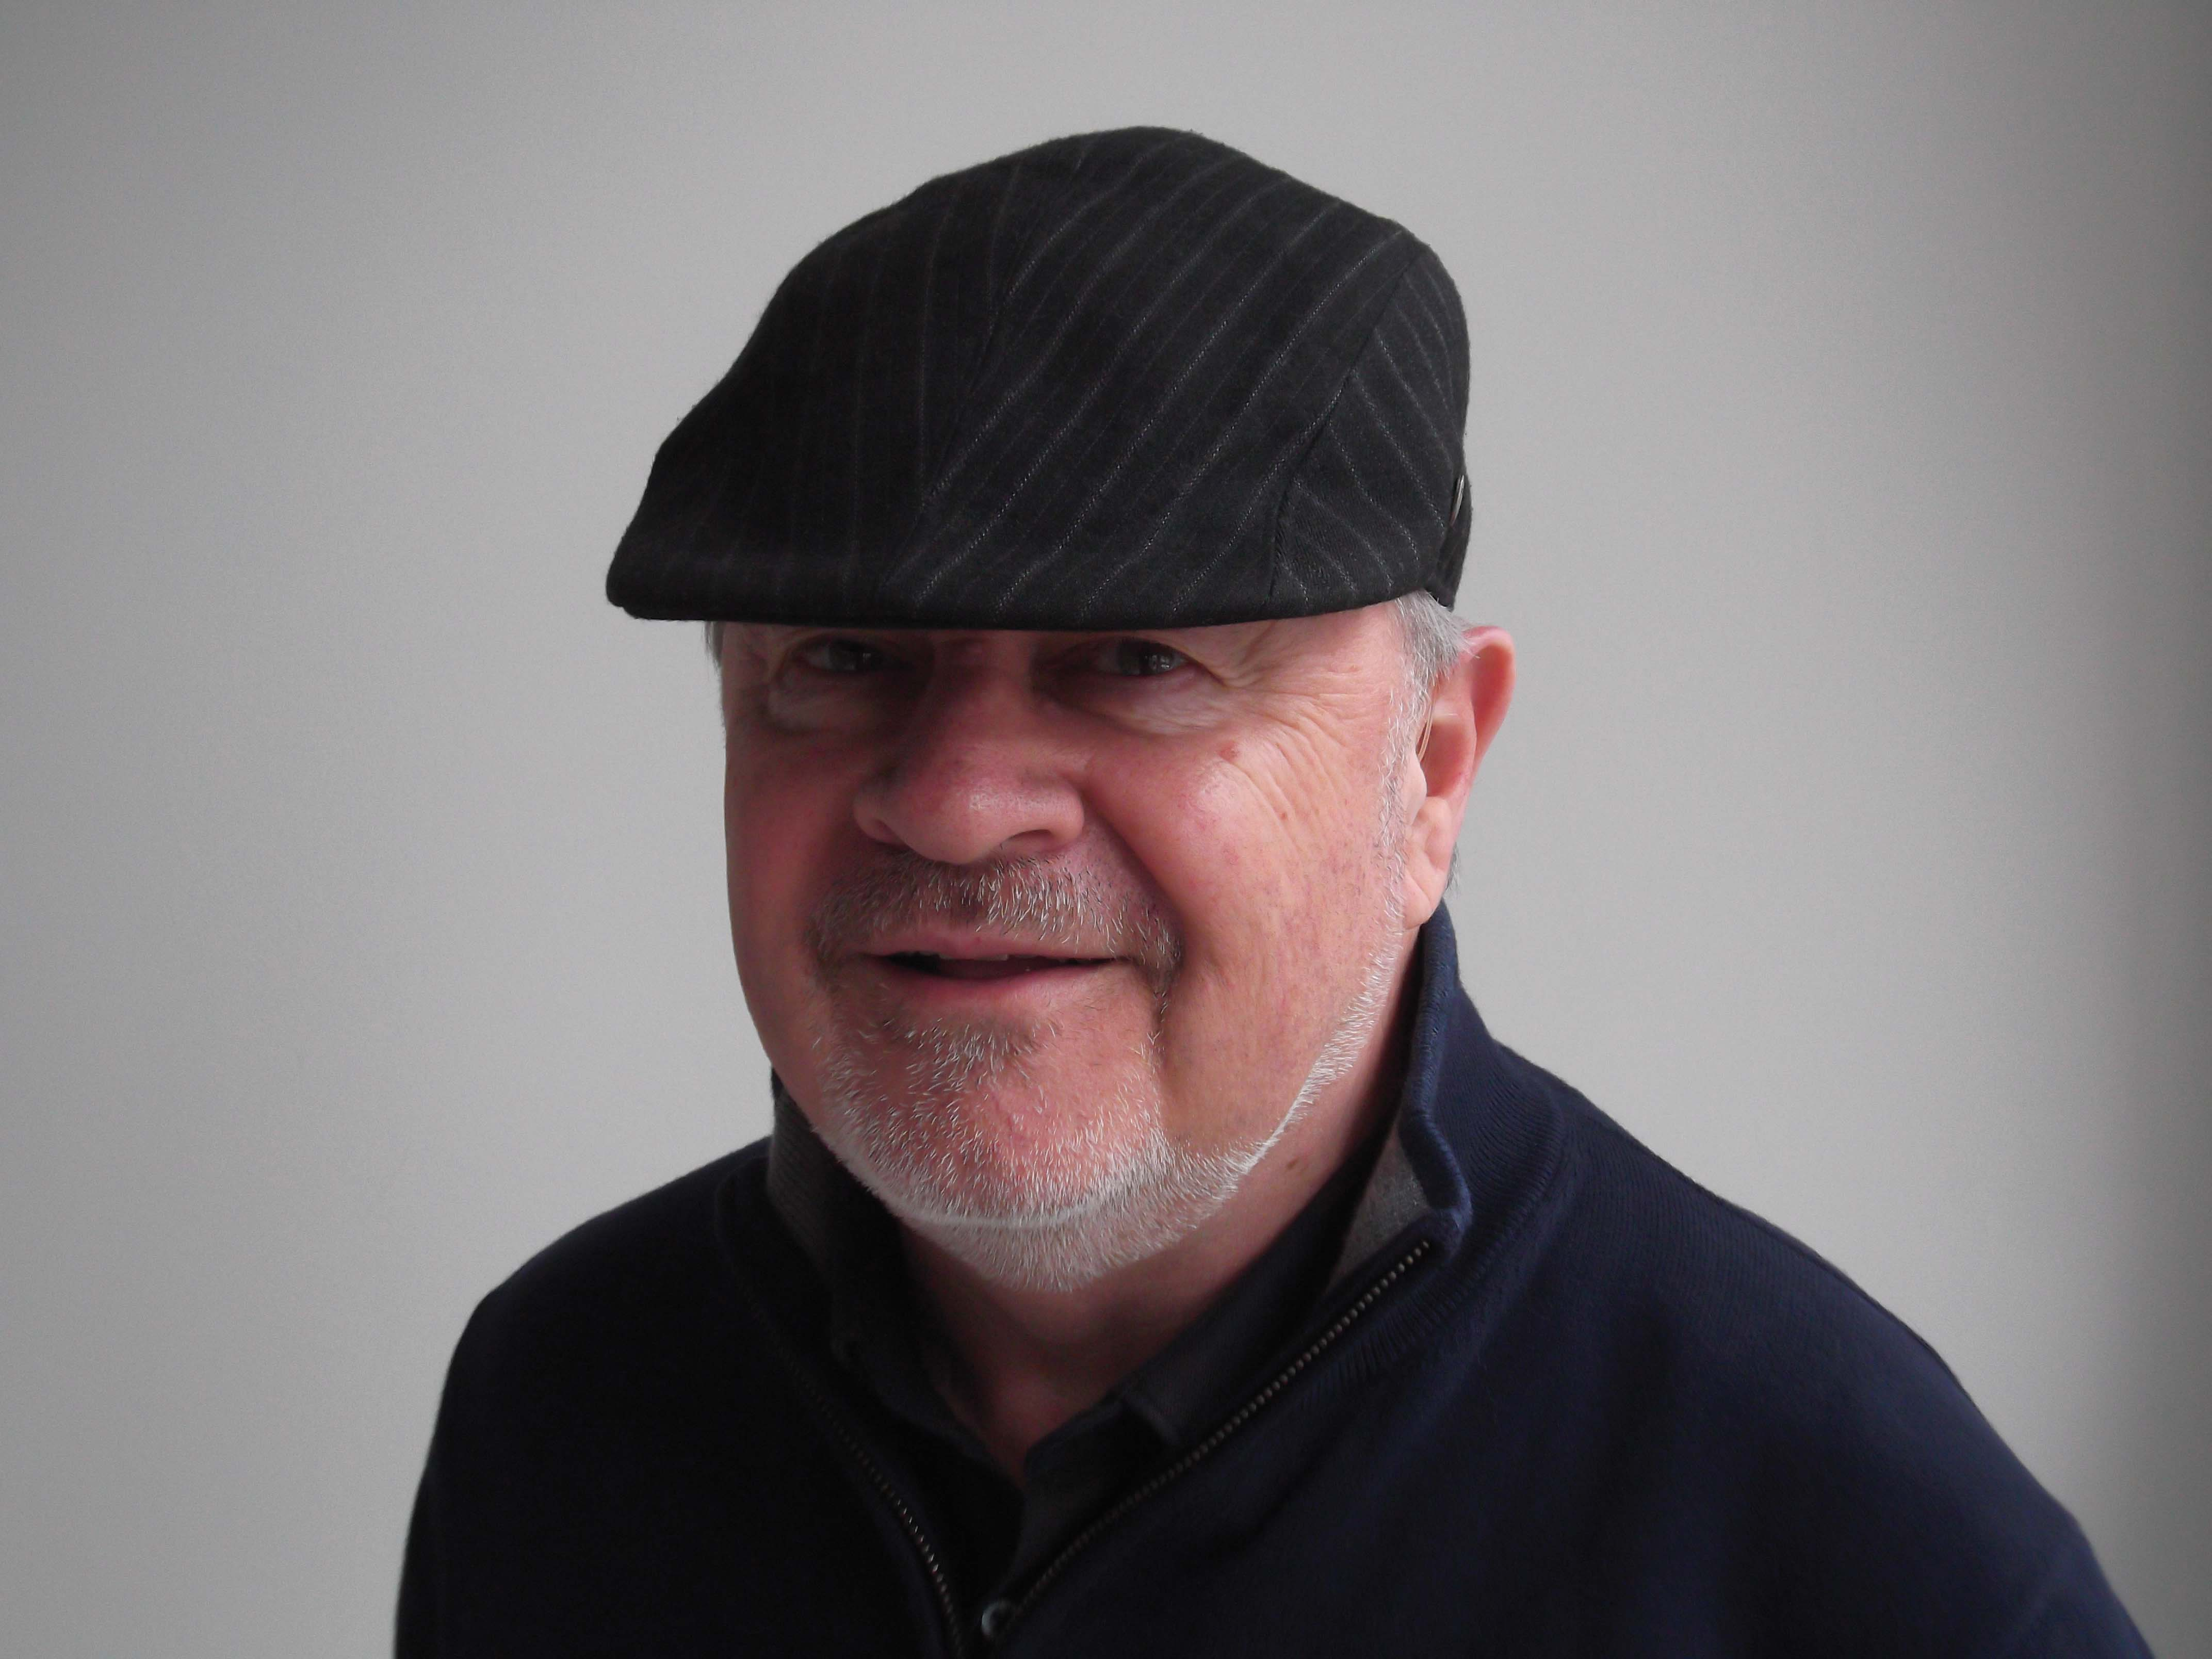 Author photo of Keith Westwater